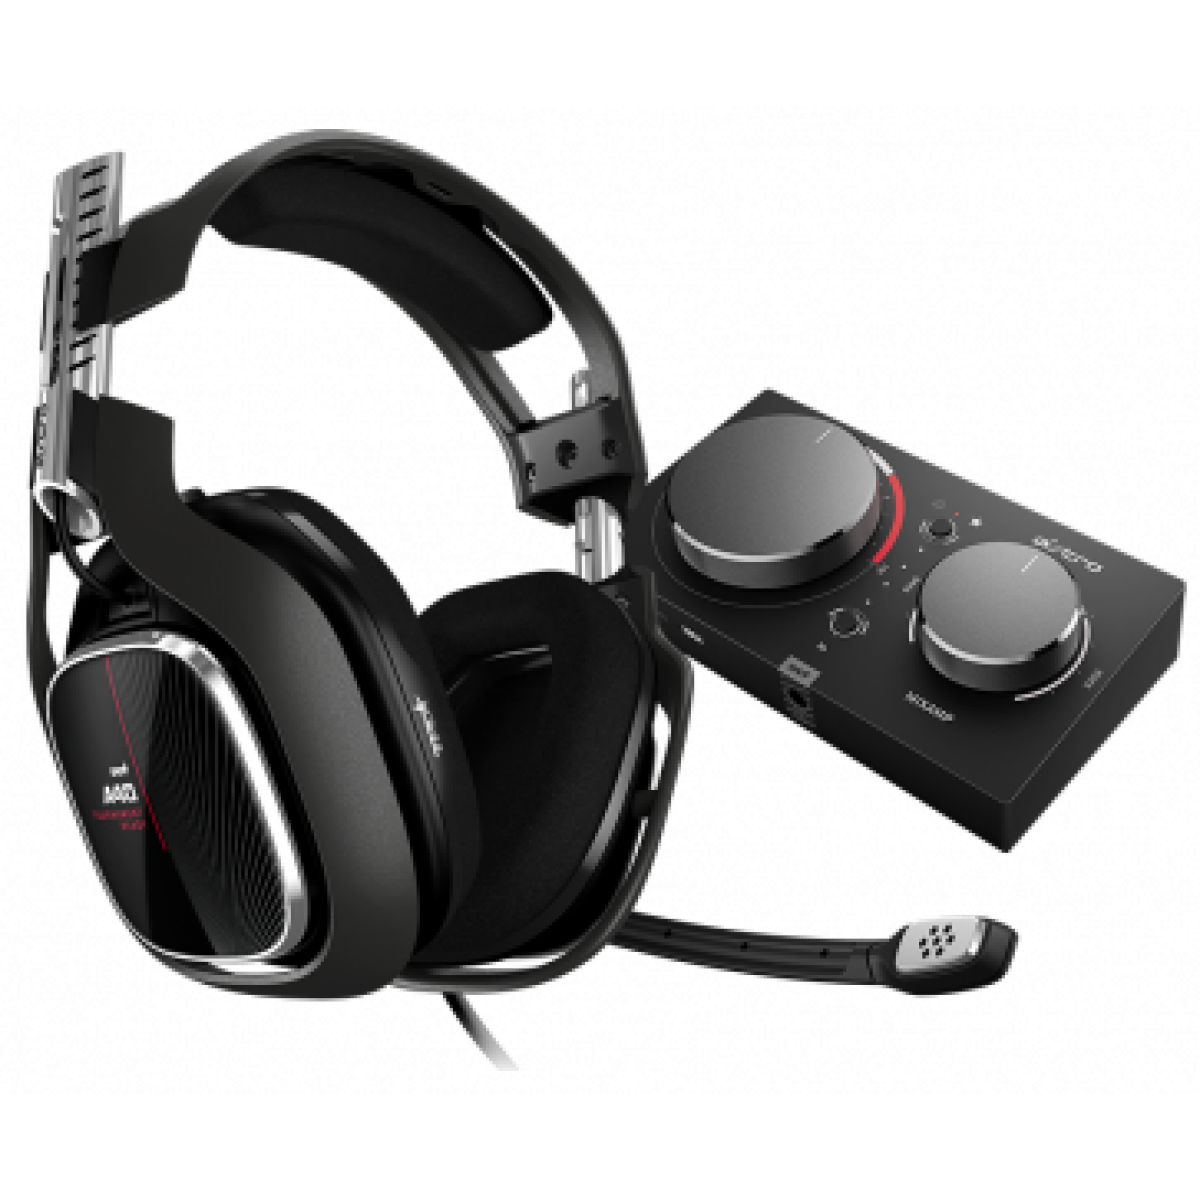 Headset Gamer Logitech Astro Gaming A40 TR + MixAmp Pro TR Gen 4 com Áudio Dolby, Xbox One, Pc, Black/Red, 939-001789